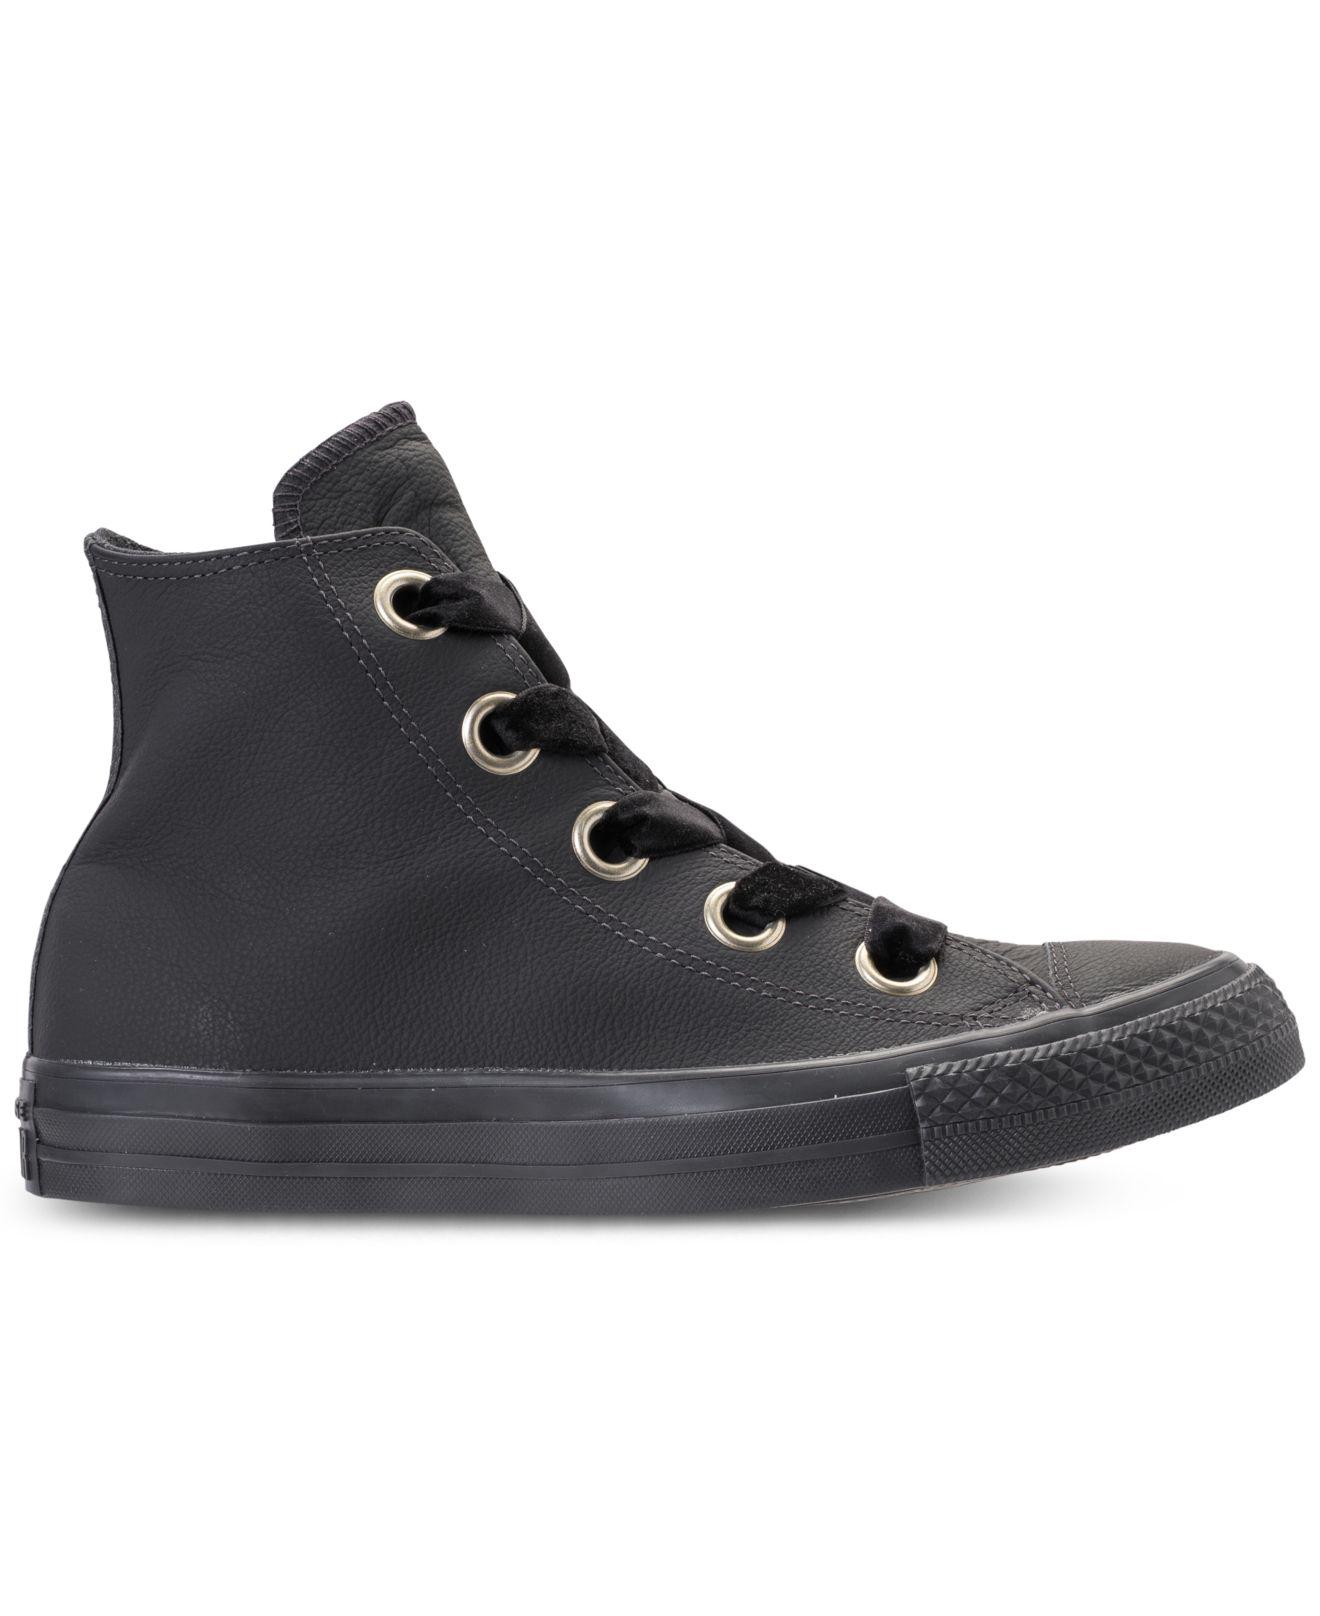 Lyst - Converse Chuck Taylor Big Eyelets High Top Casual Sneakers From  Finish Line in Black - Save 20% 332a354200